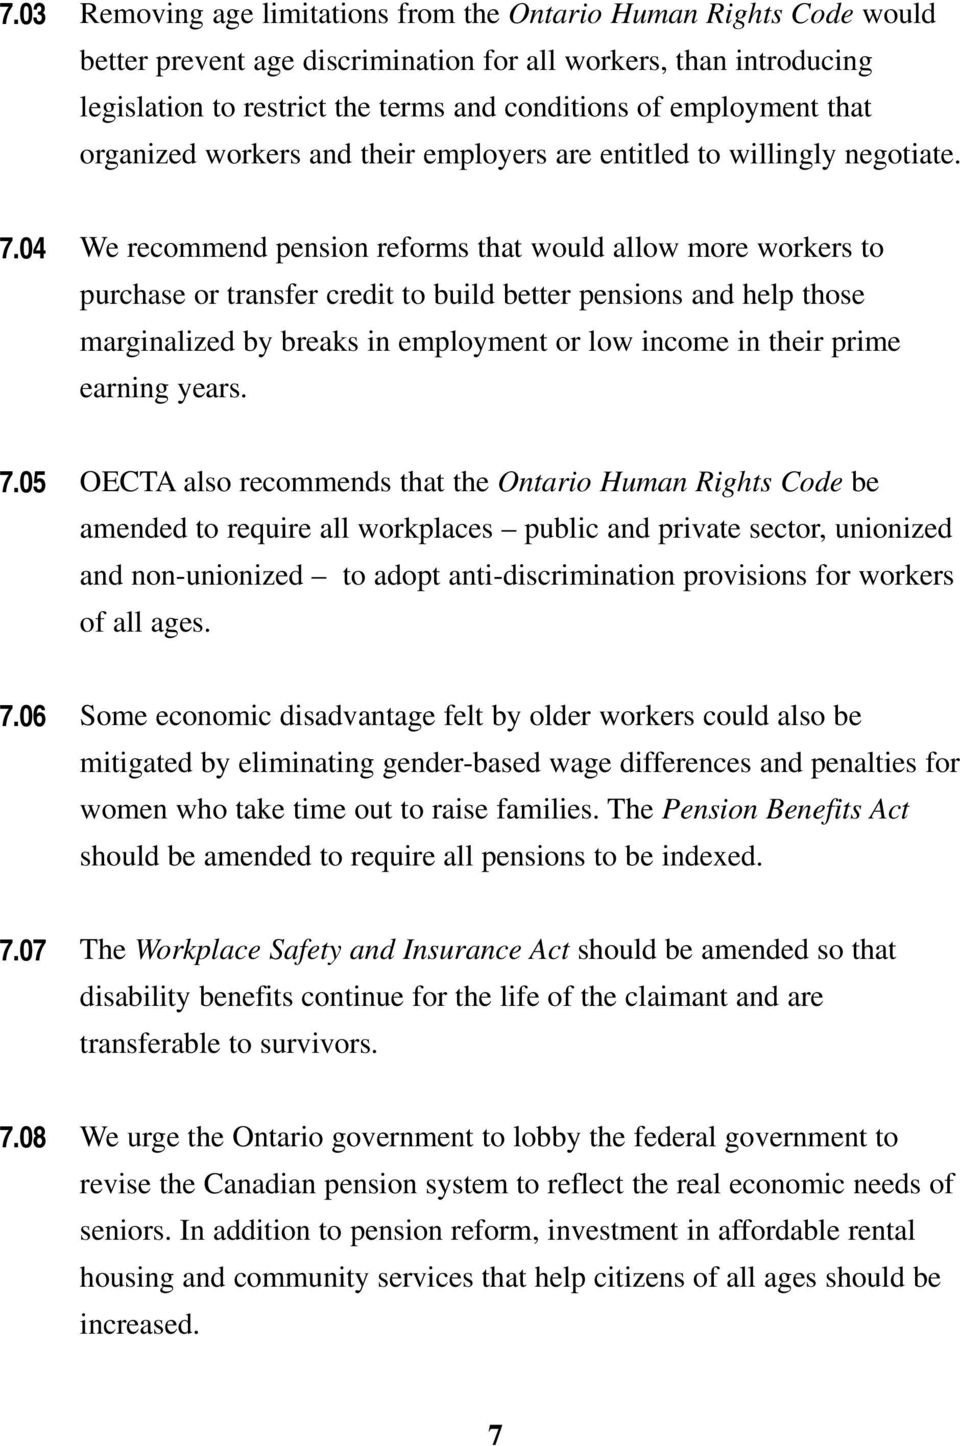 04 We recommend pension reforms that would allow more workers to purchase or transfer credit to build better pensions and help those marginalized by breaks in employment or low income in their prime